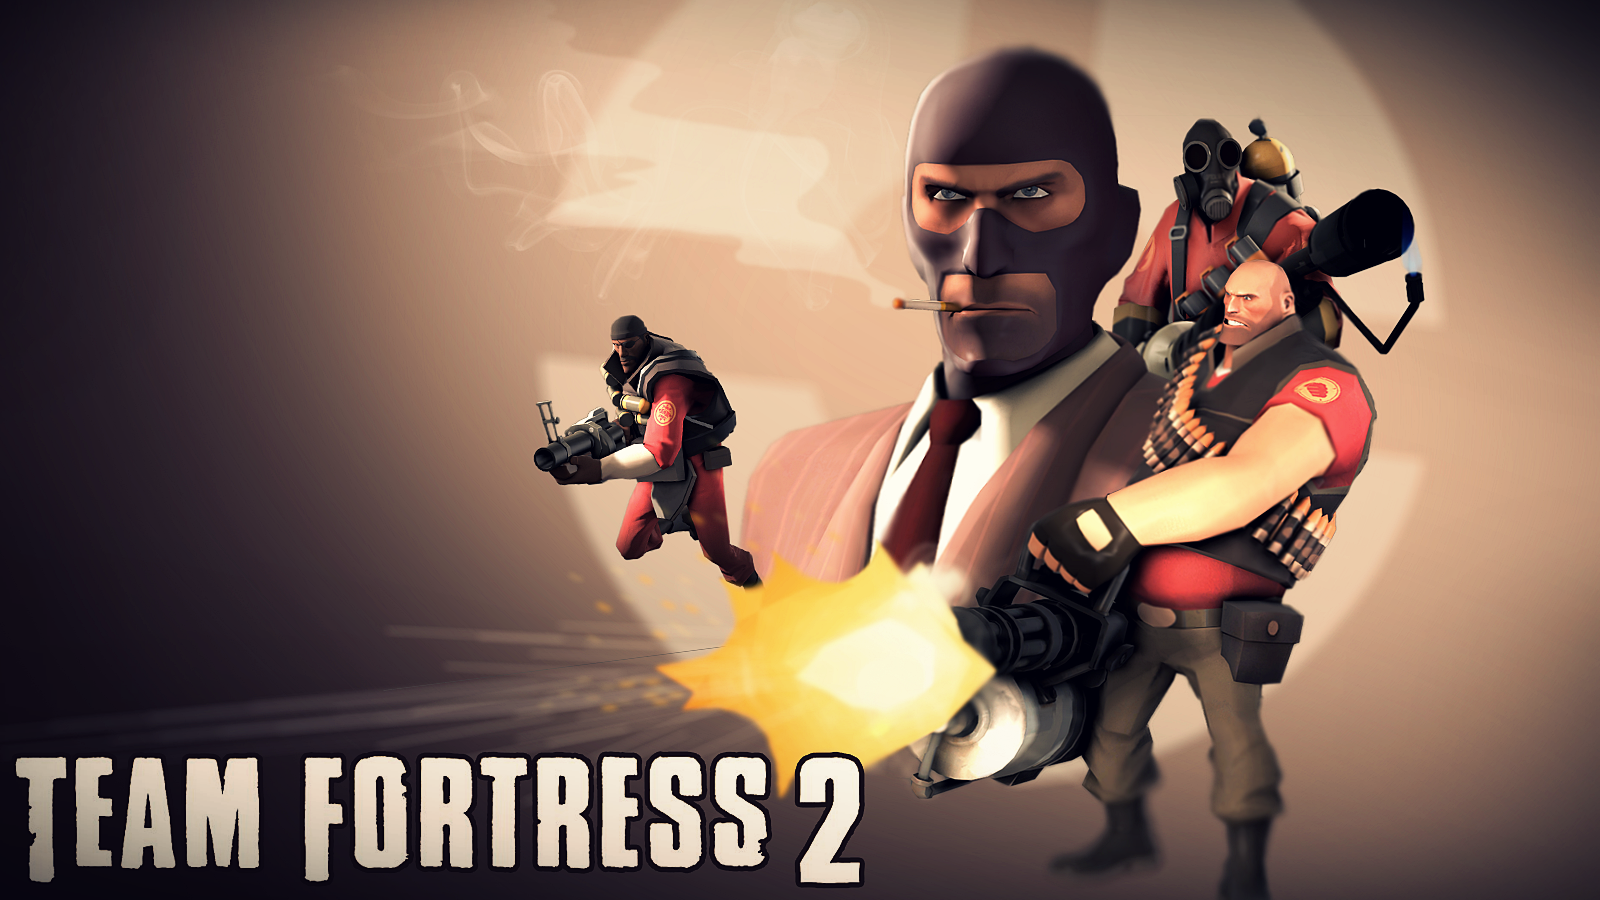 team fortress 2 wallpapers wallpapersafari